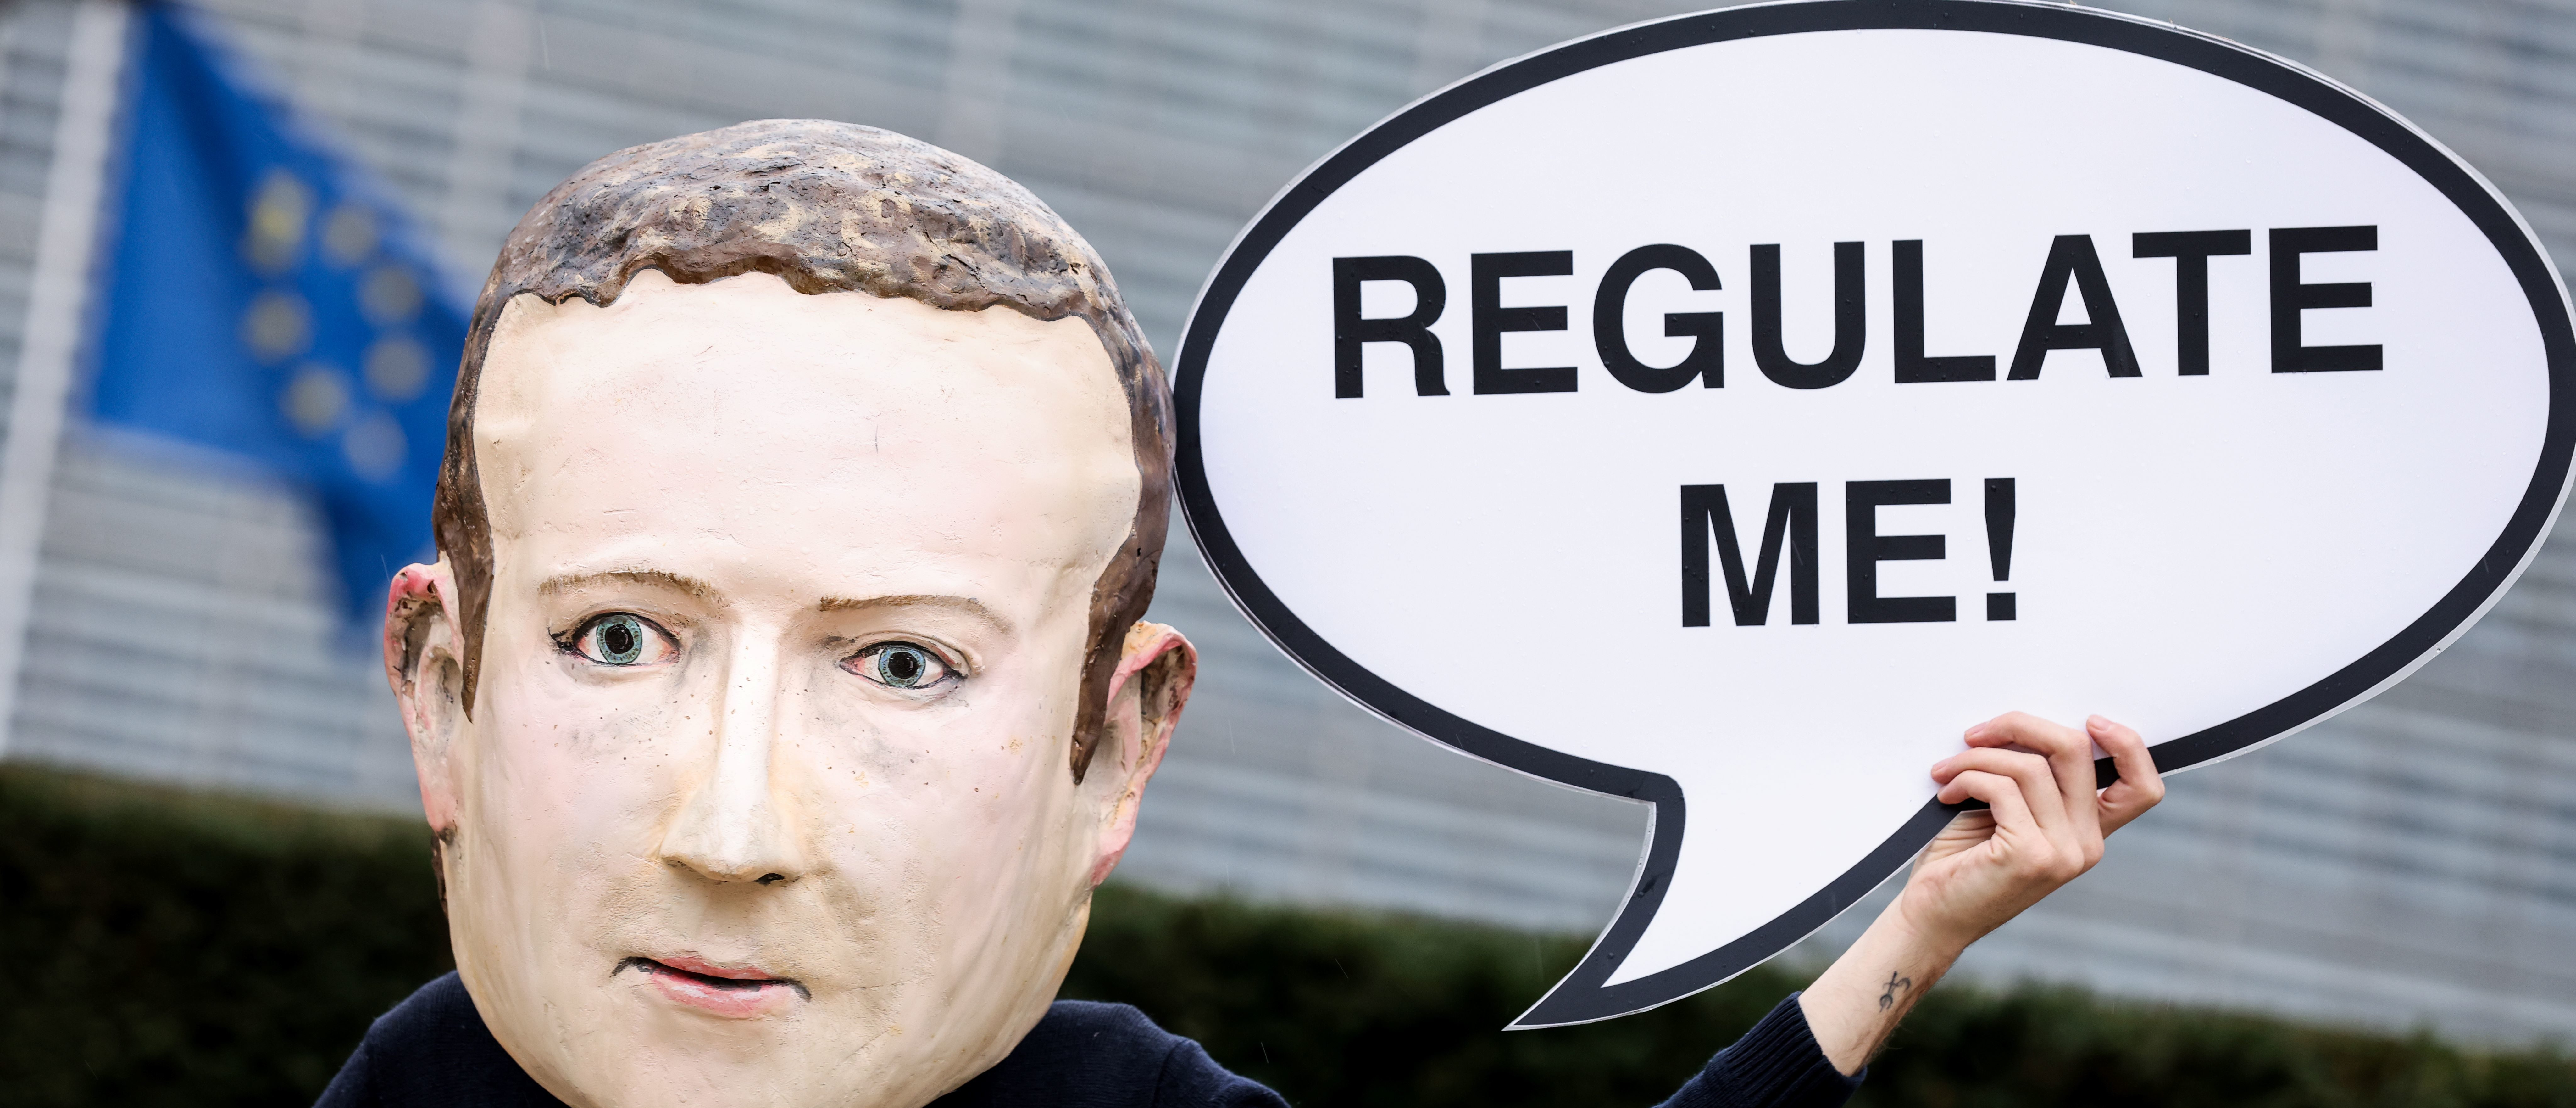 """An activist of environmental NGO Avaaz wearing a mask depicting Facebook CEO Mark Zuckerberg holds a banner reading """"Regulate me"""" during an action marking the release of the Digital Services Act, outside the European Commission building in Brussels on December 15, 2020. (Photo by KENZO TRIBOUILLARD/AFP via Getty Images)"""